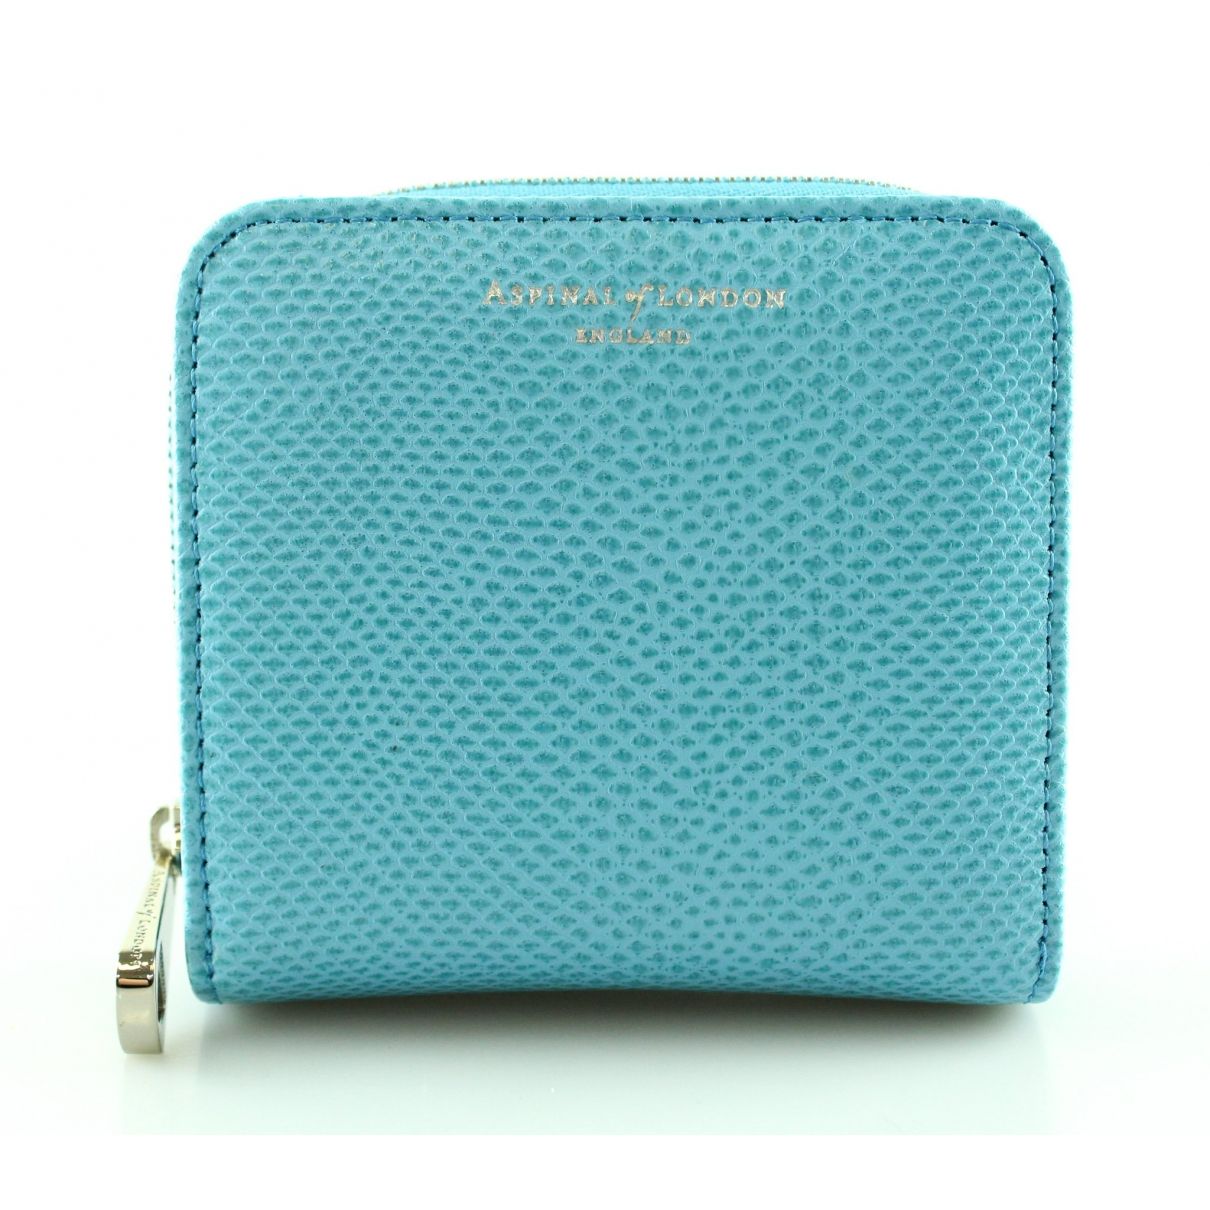 Aspinal Of London \N Blue Leather wallet for Women \N